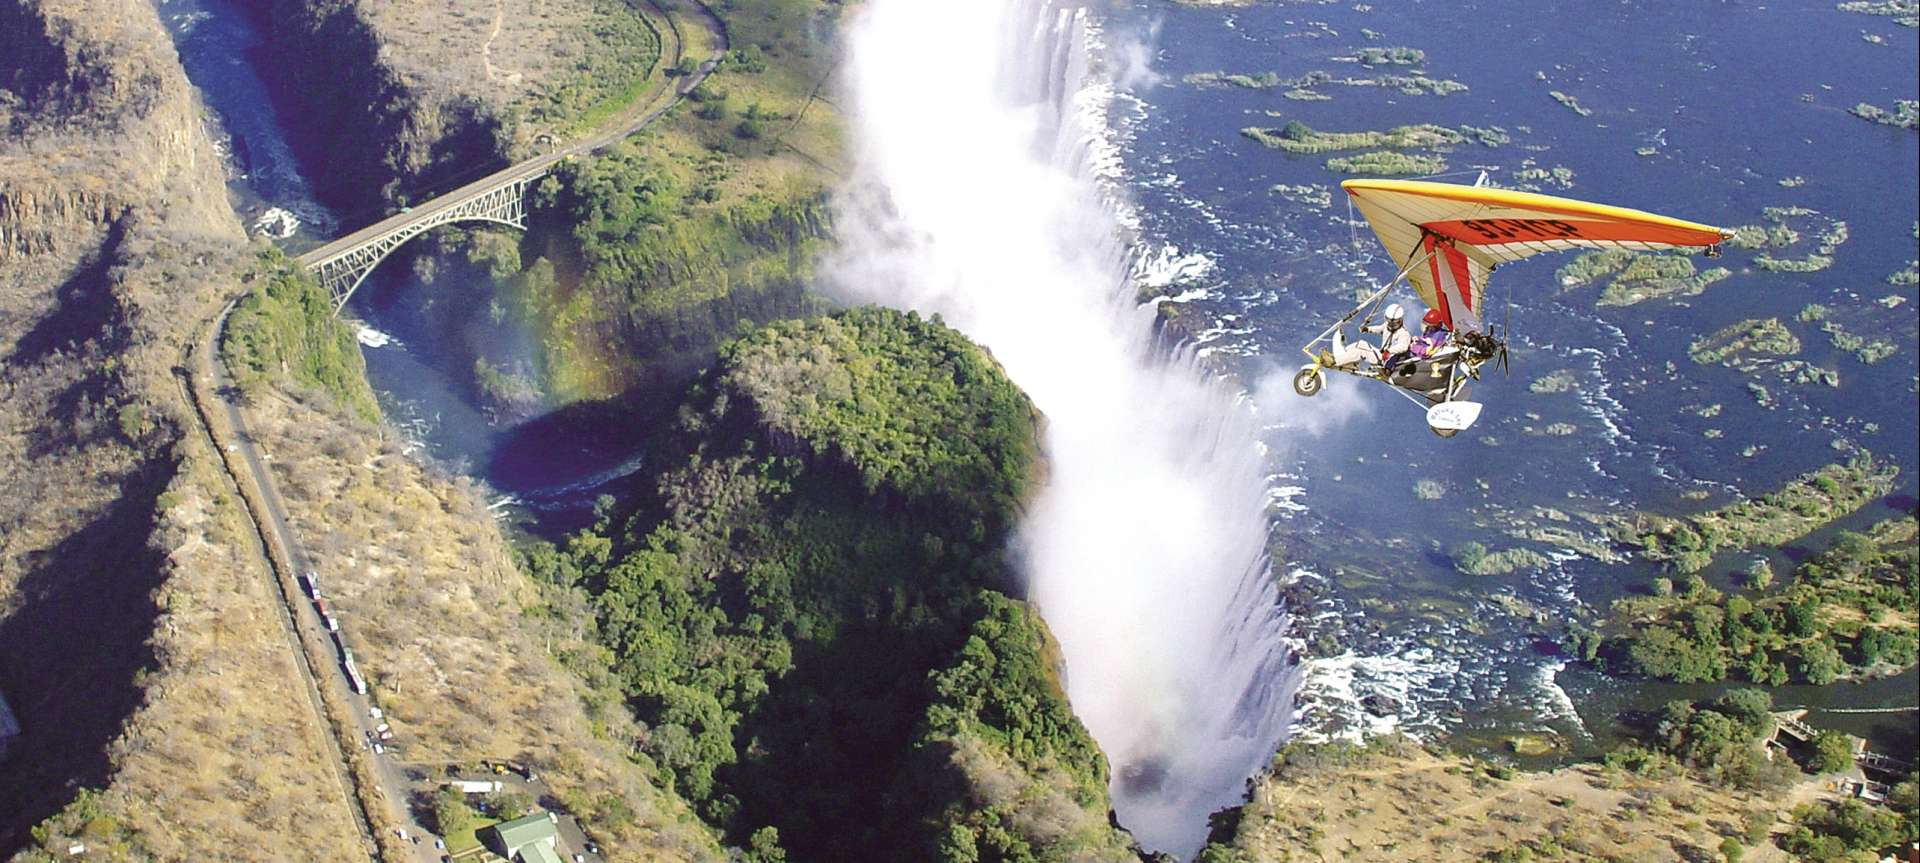 Imagine taking a microlight over the falls to get a bird's eye view?